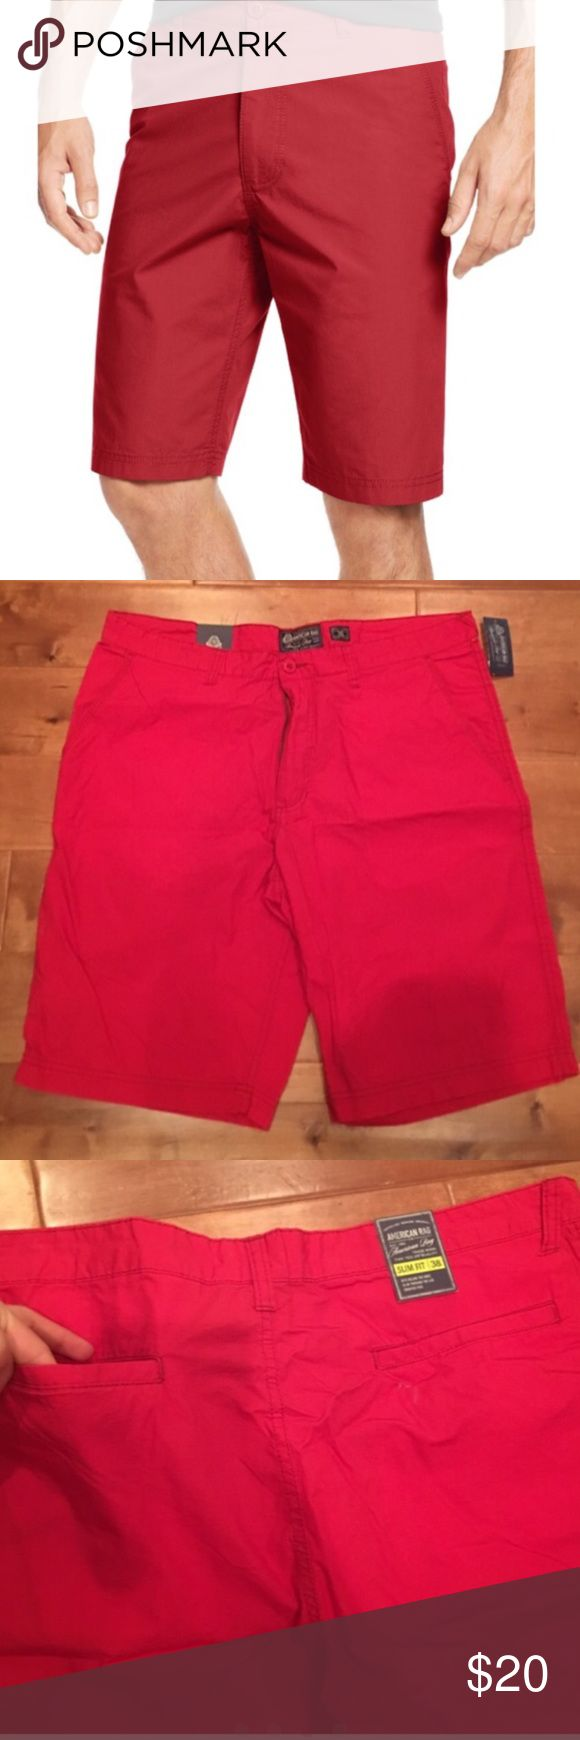 Mens slim fit red shorts New with tags, retails $38 plus tax. Sold red slim fit shorts.  Size large fits size 36/38 American Rag Shorts Cargo